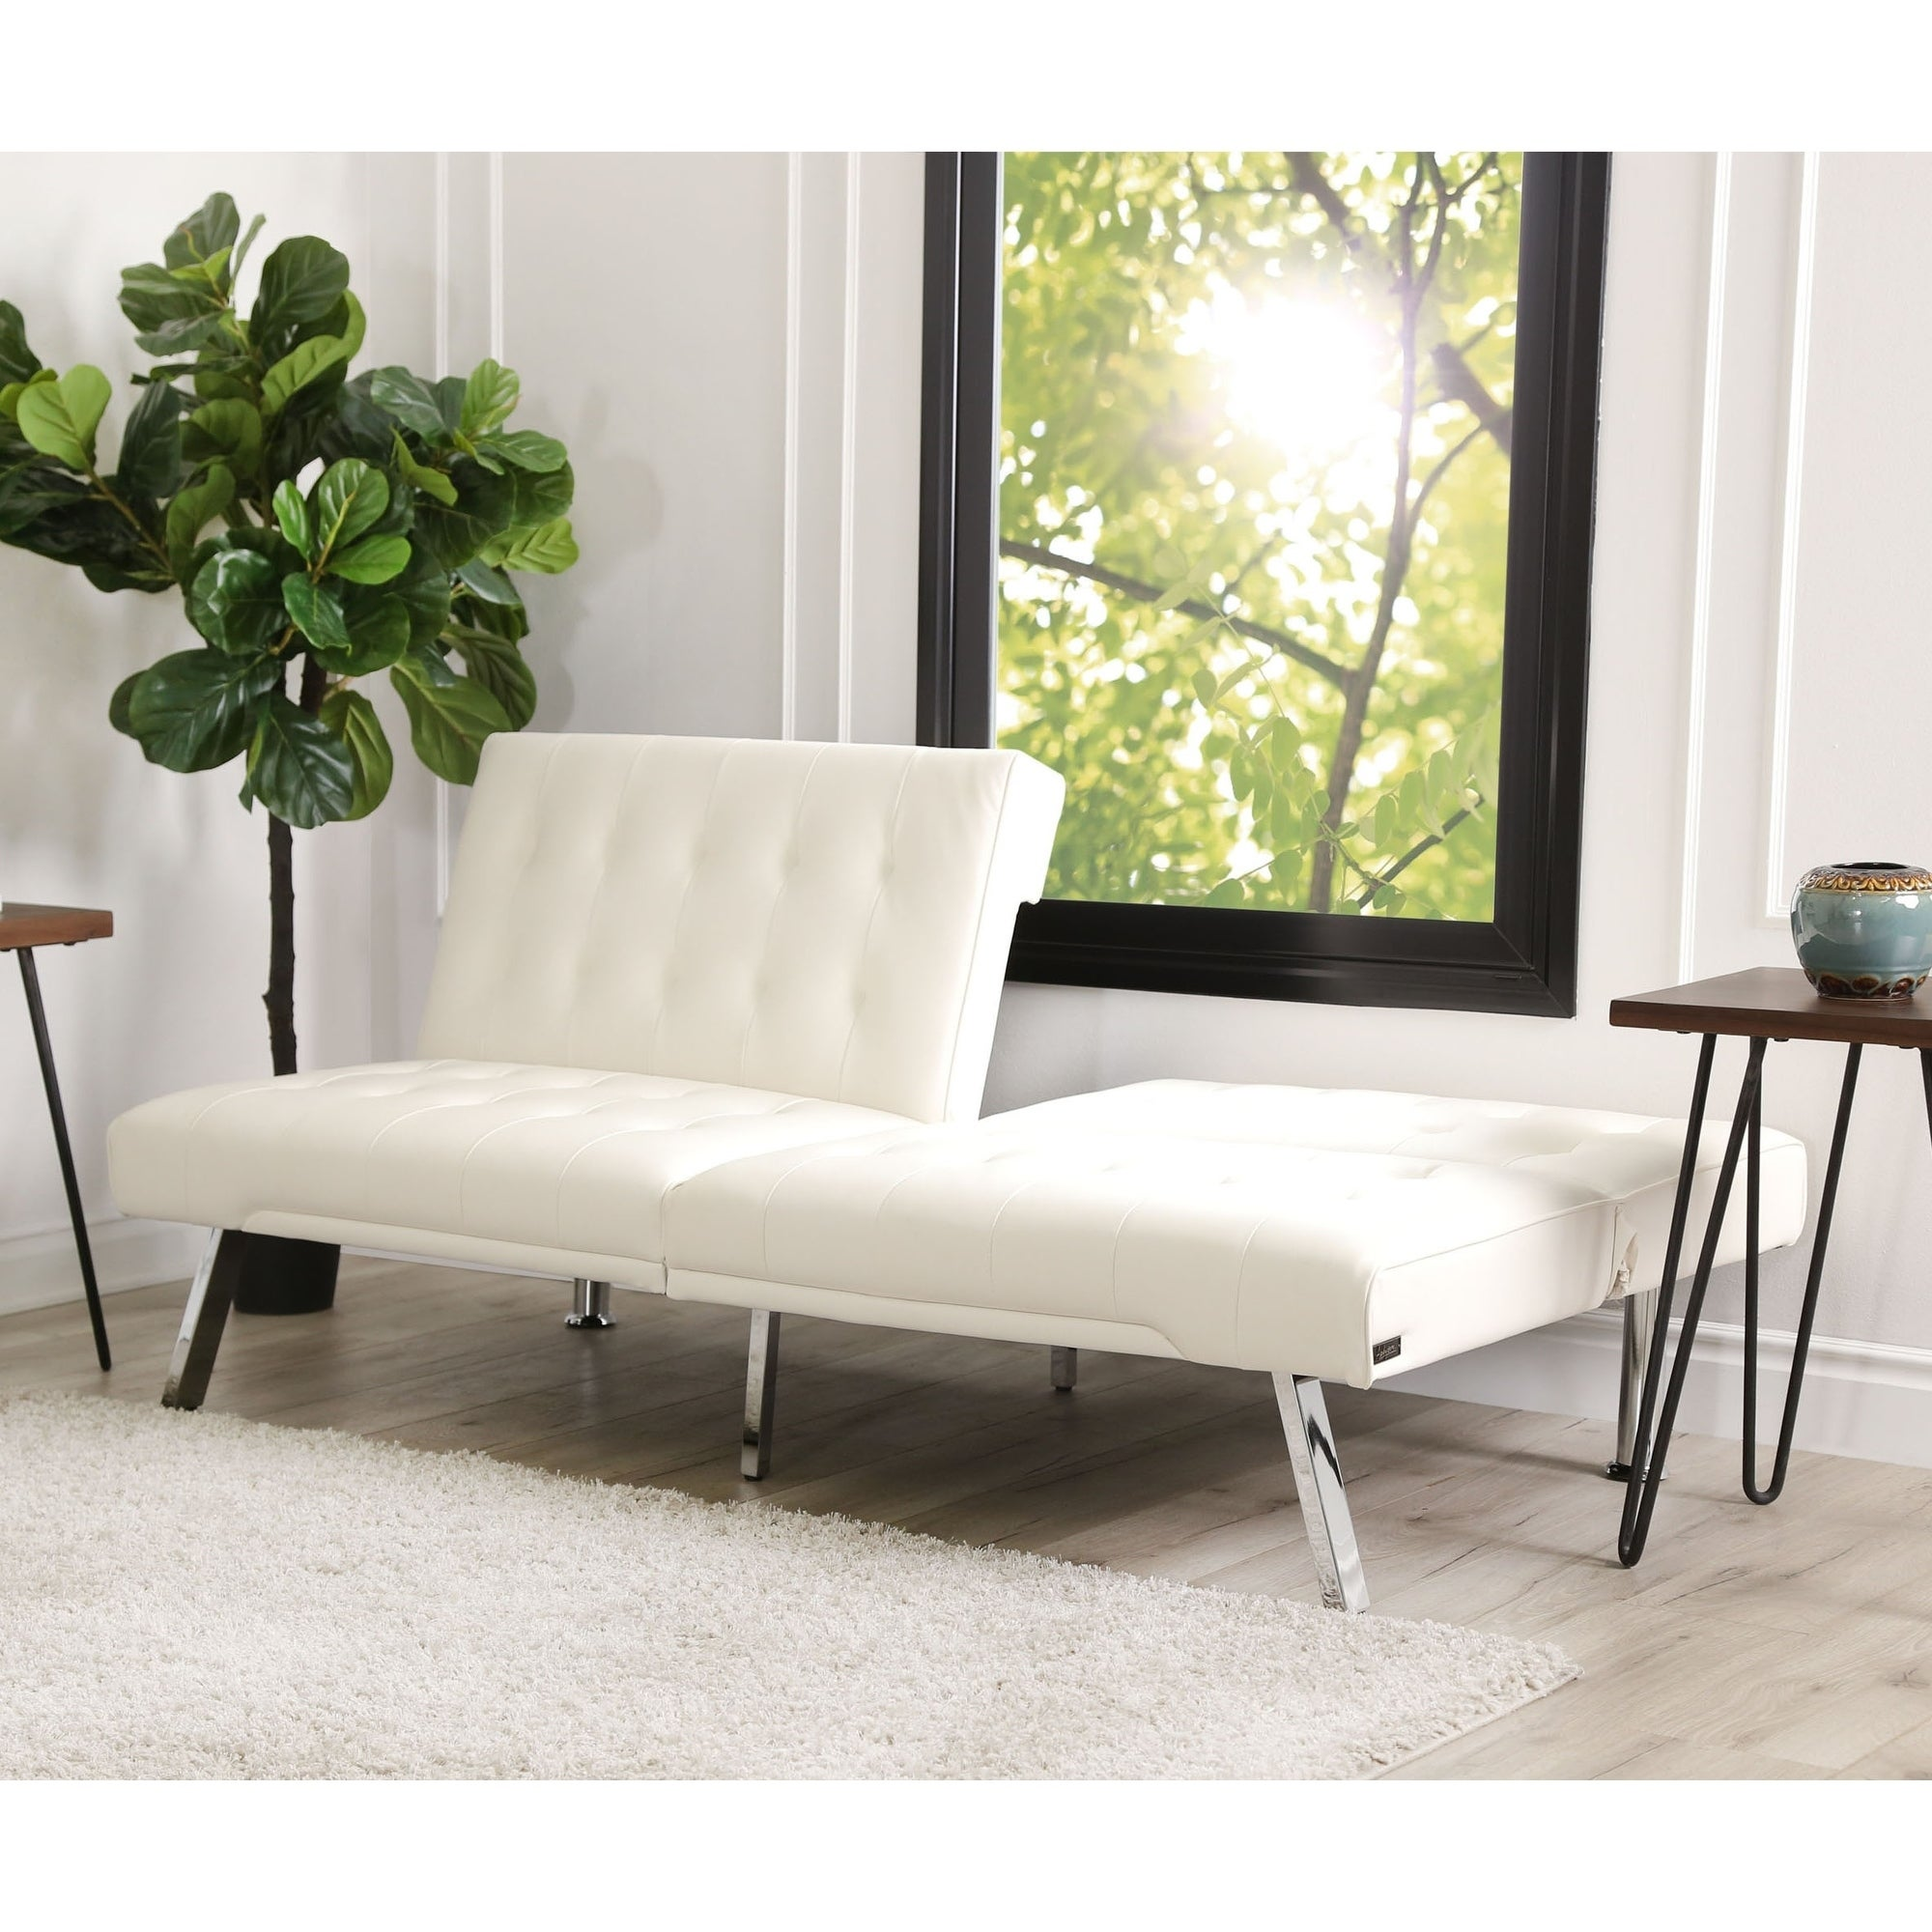 reputable site efd82 5241a Abbyson Jackson Ivory Leather Foldable Futon Sofa Bed